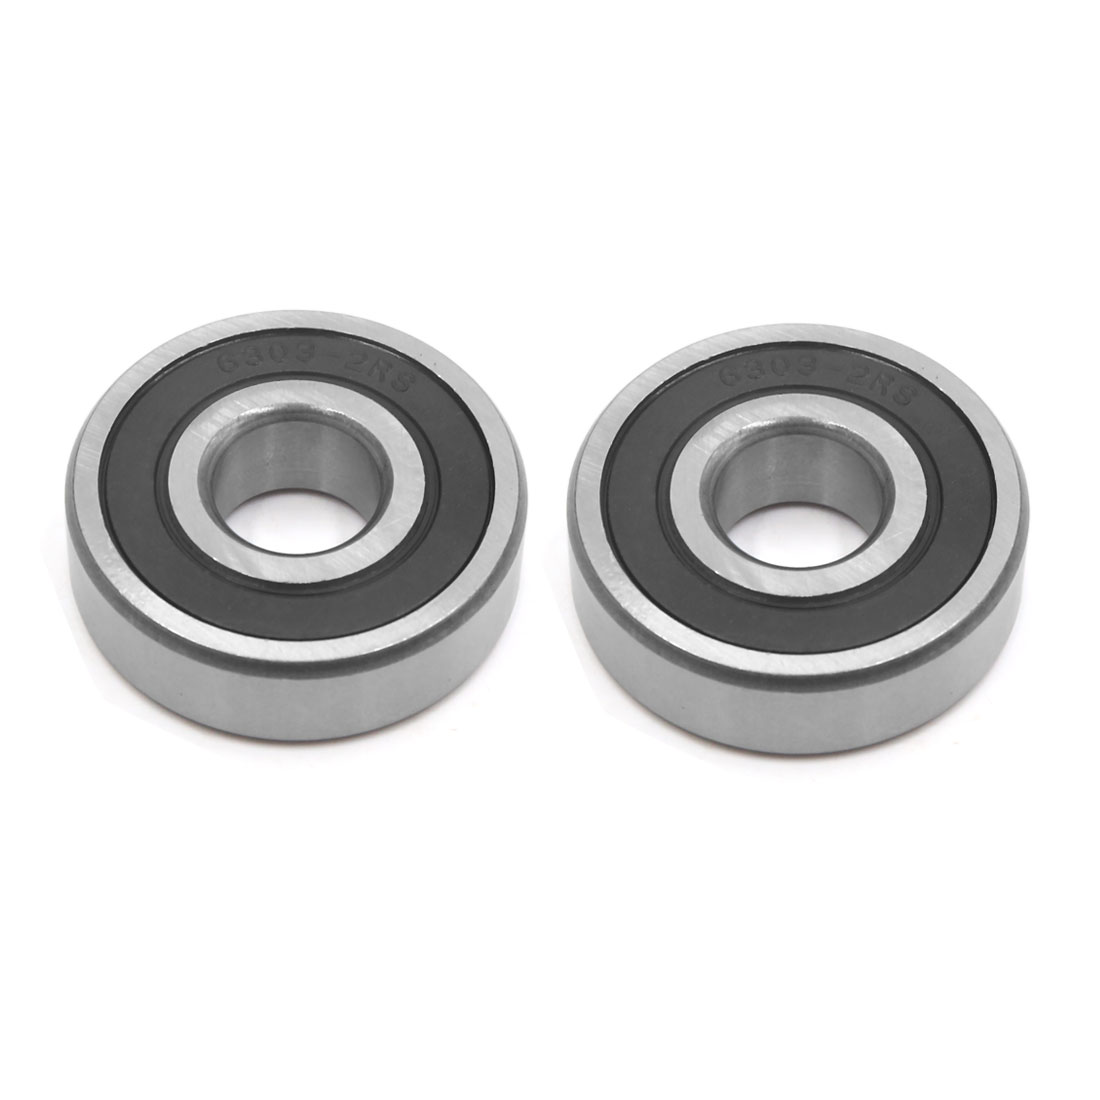 2Pcs 6303-2RS Metal Motorcycle Deep Groove Radial Ball Bearing 47 x 17 x 14mm